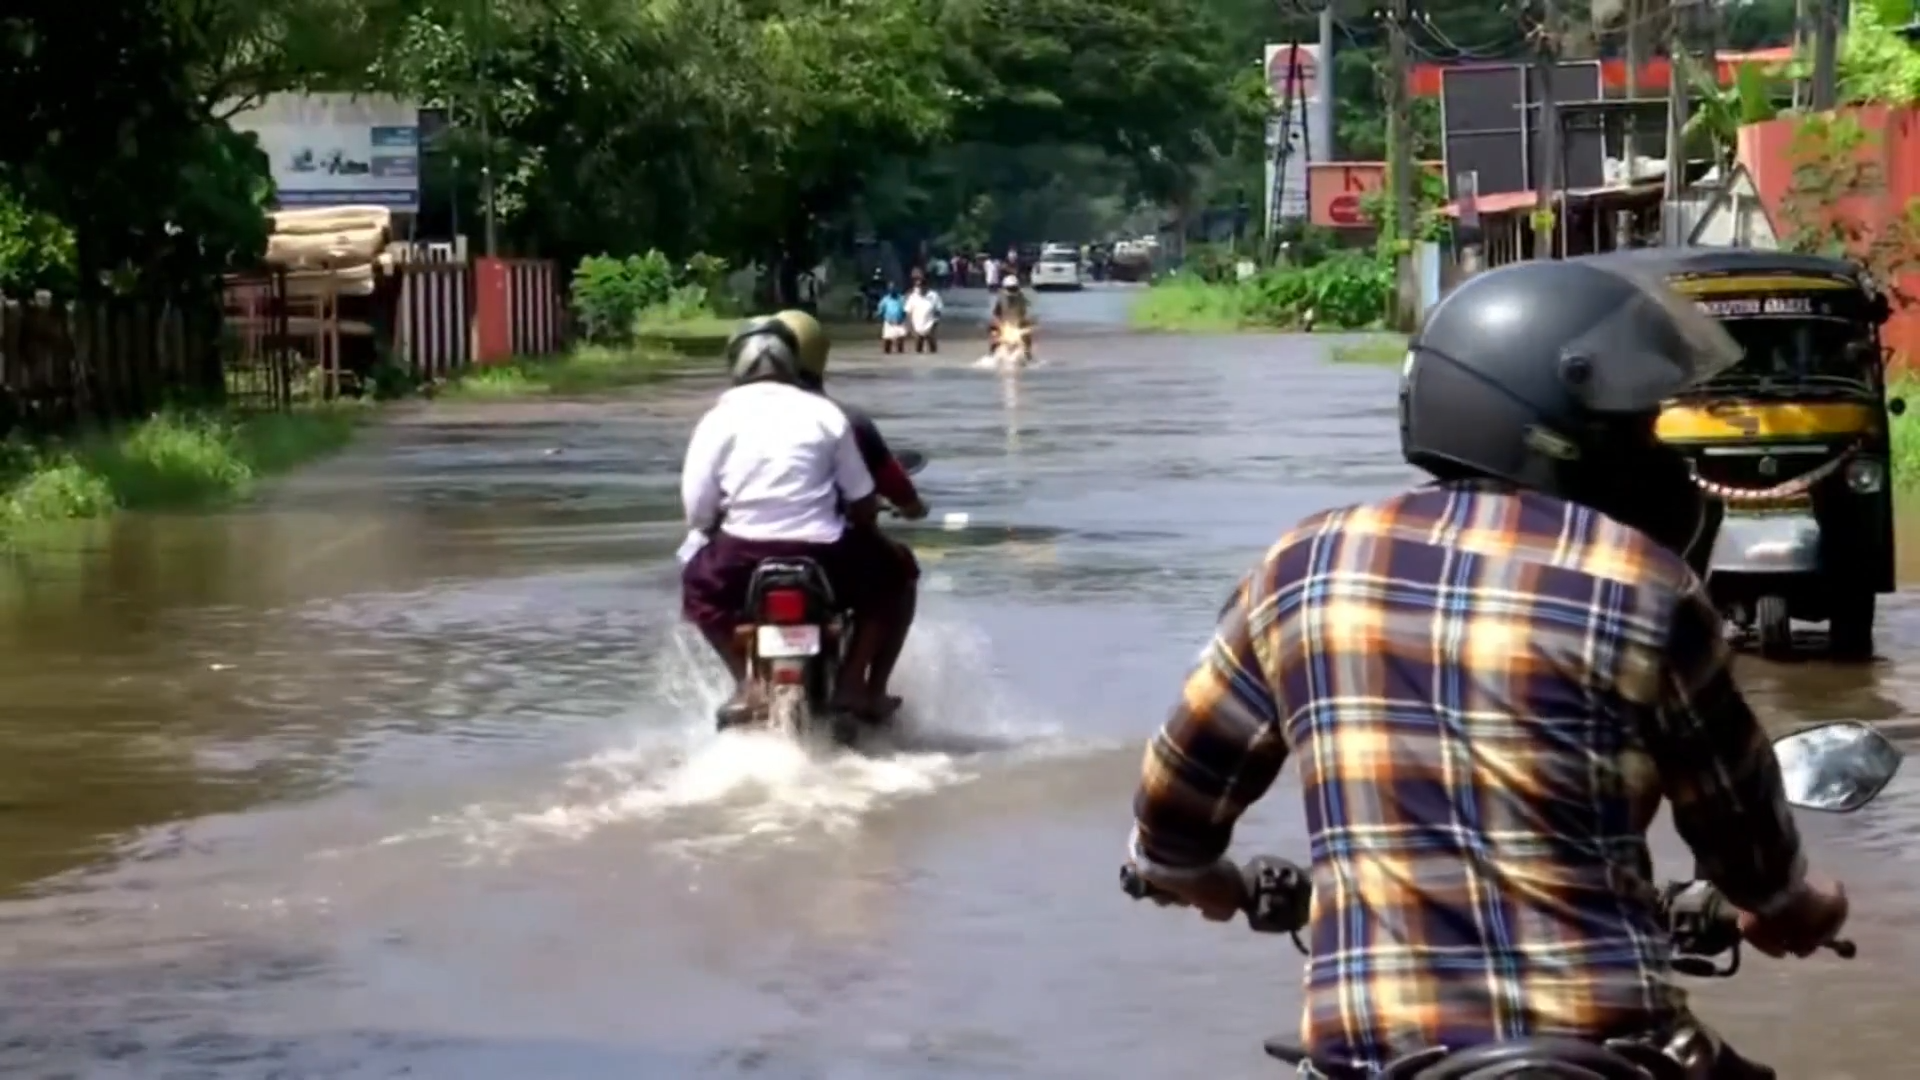 Kerala floods: Clear up continues after flash floods and landslides in southern India - channel 4